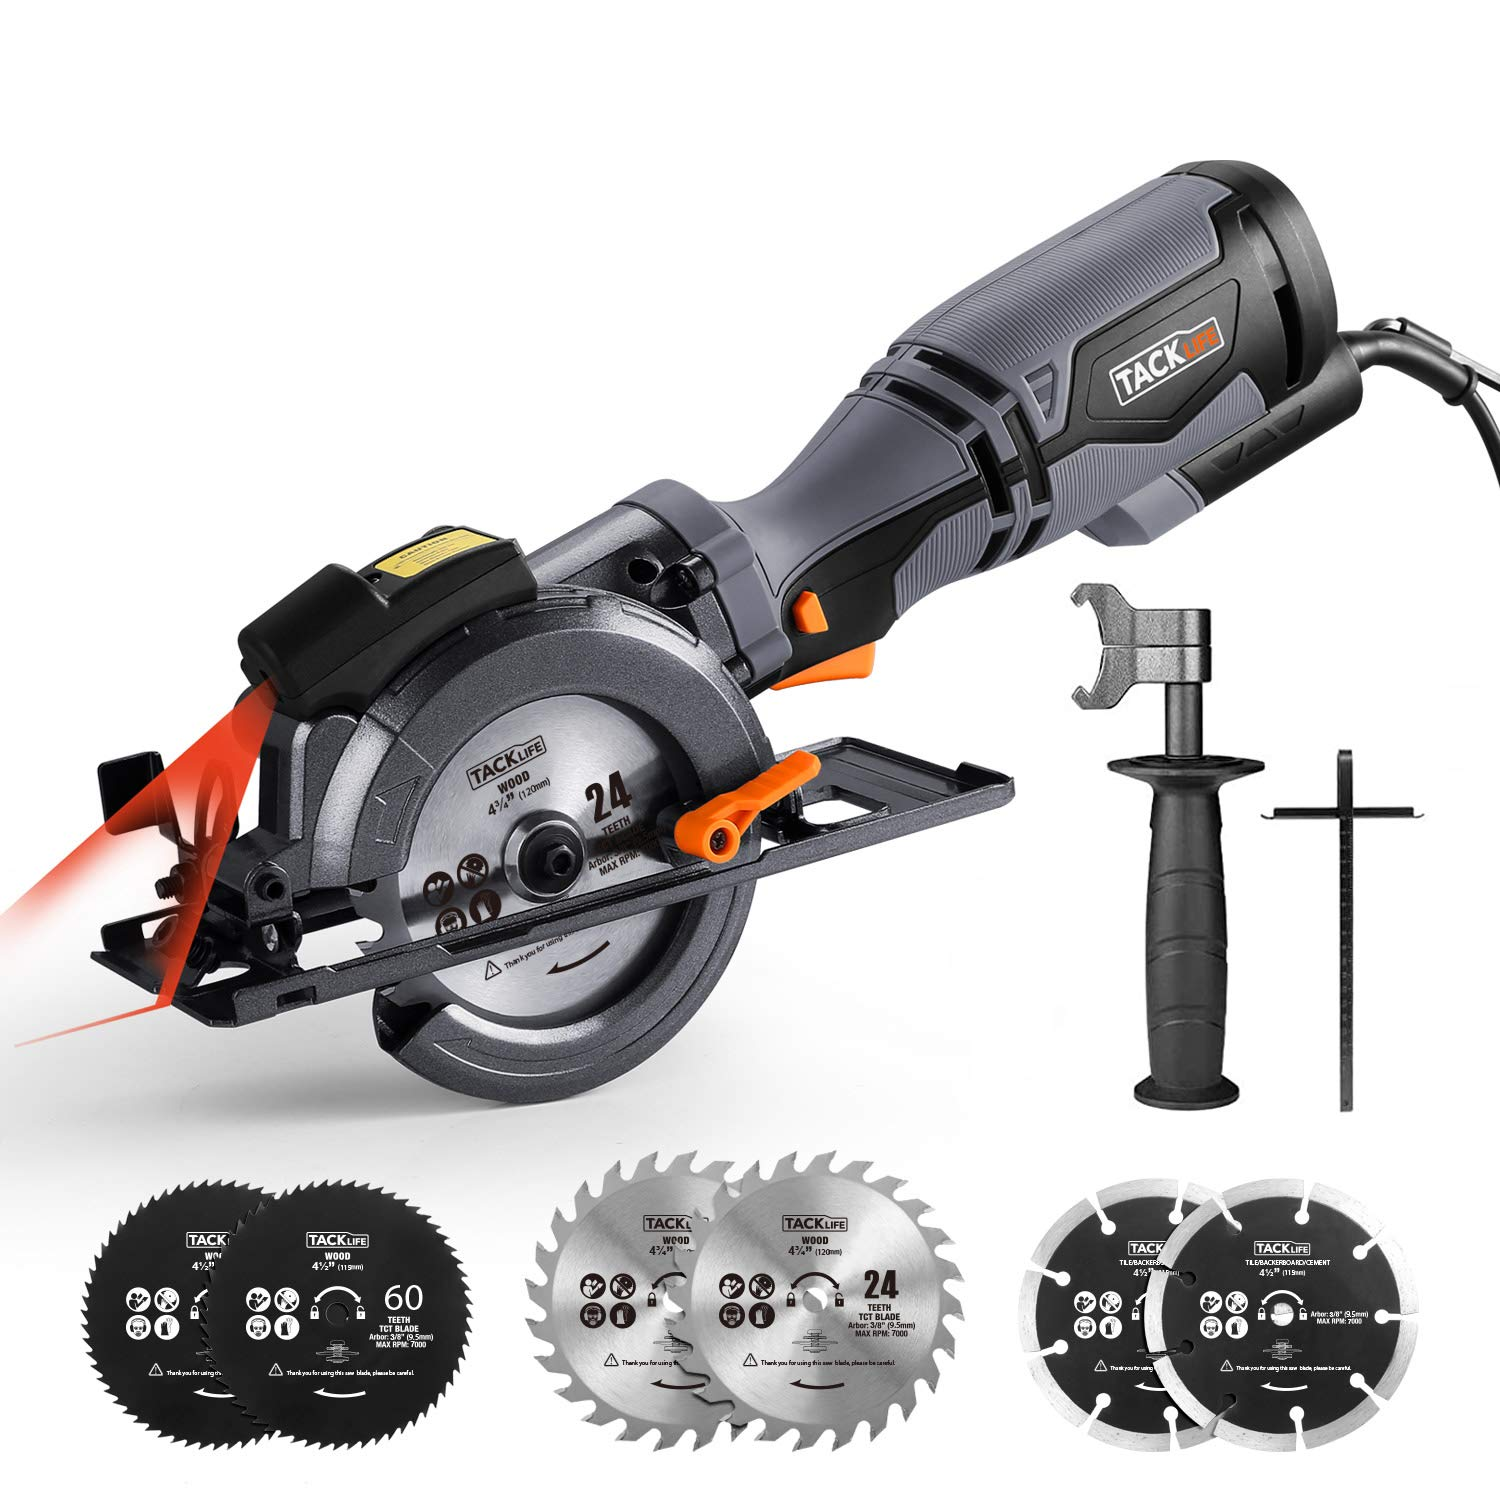 """TACKLIFE Circular Saw with Metal Handle, 6 Blades (4-3/4"""" & 4-1/2""""), Laser, 5.8A, Cutting Depth 1-11/16'' (90°), 1-3/8'' (45°), Corded Circular Saw for Wood, Soft Metal, Tile, Plastic Cuts - TCS115A"""